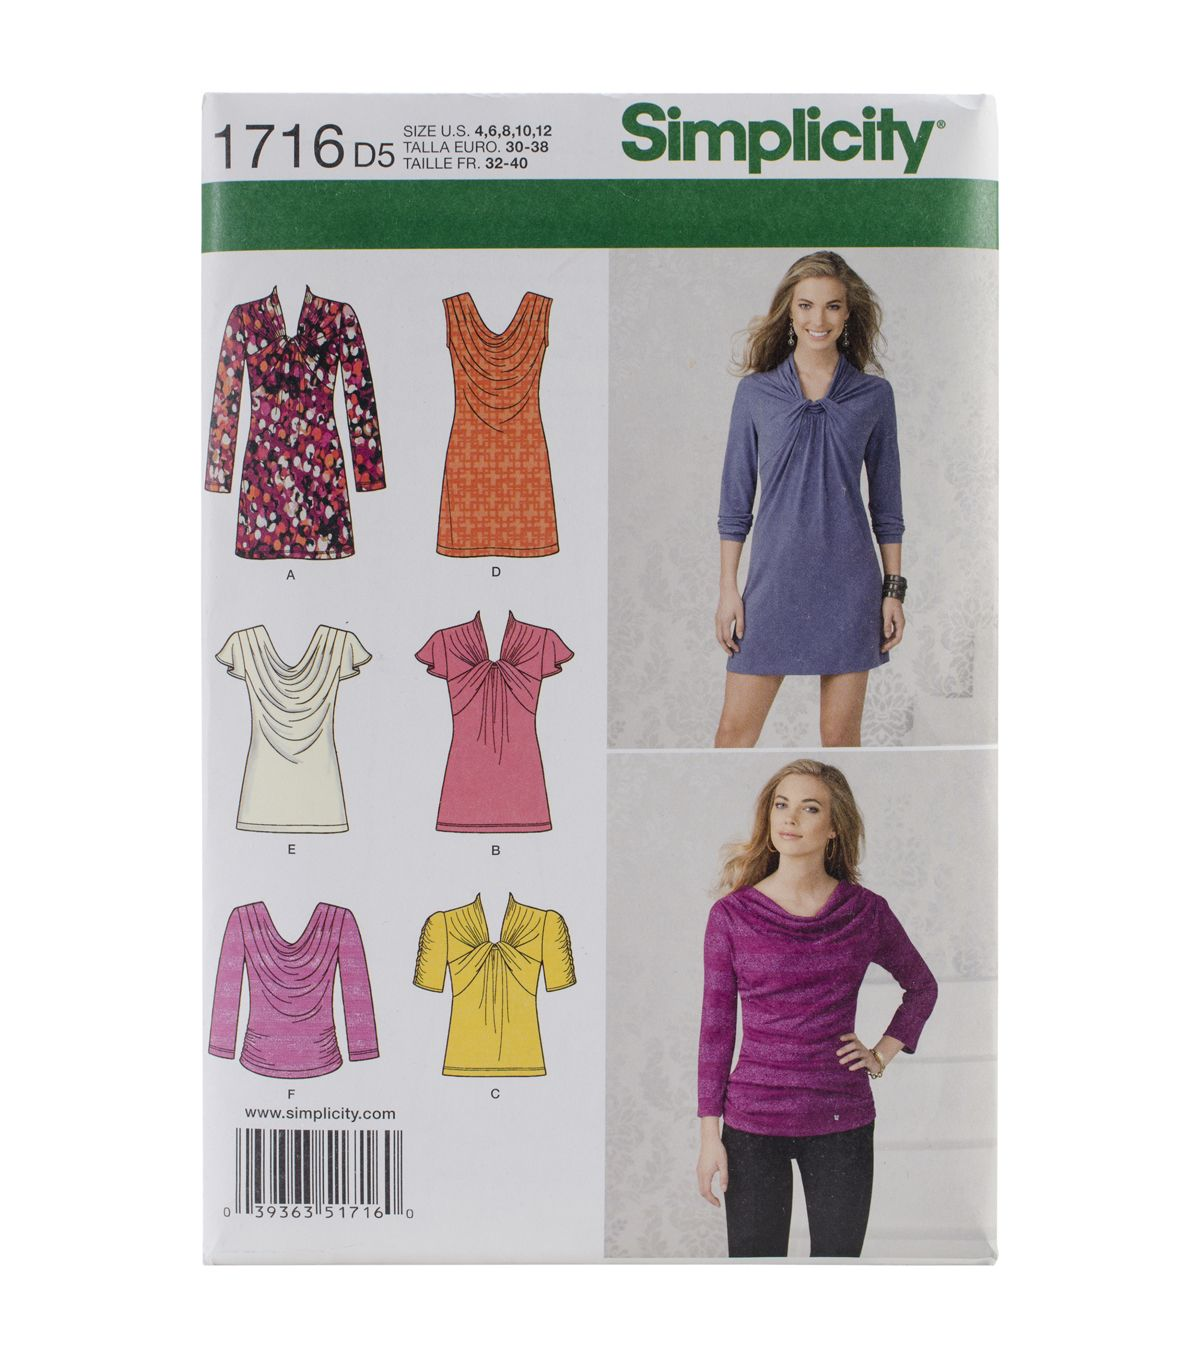 Simplicity Patterns Us1716D5 - Simplicity Misses\' Knit Top And Mini ...